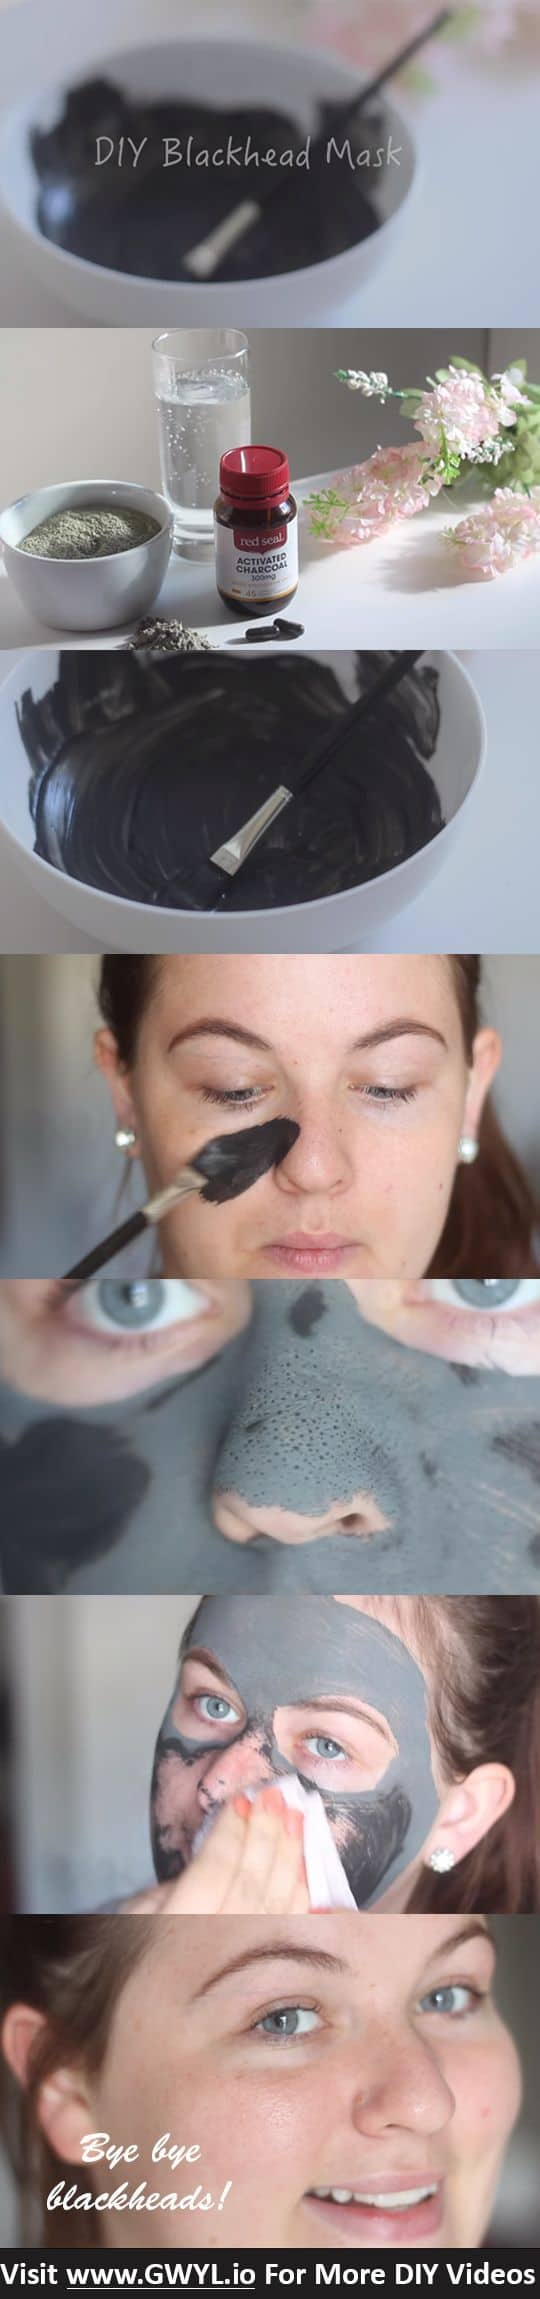 This rinse-off face mask is as good as the ones bought in stores. Its main ingredients are activated charcoal and instead of bentonite clay, makes use of French green clay.